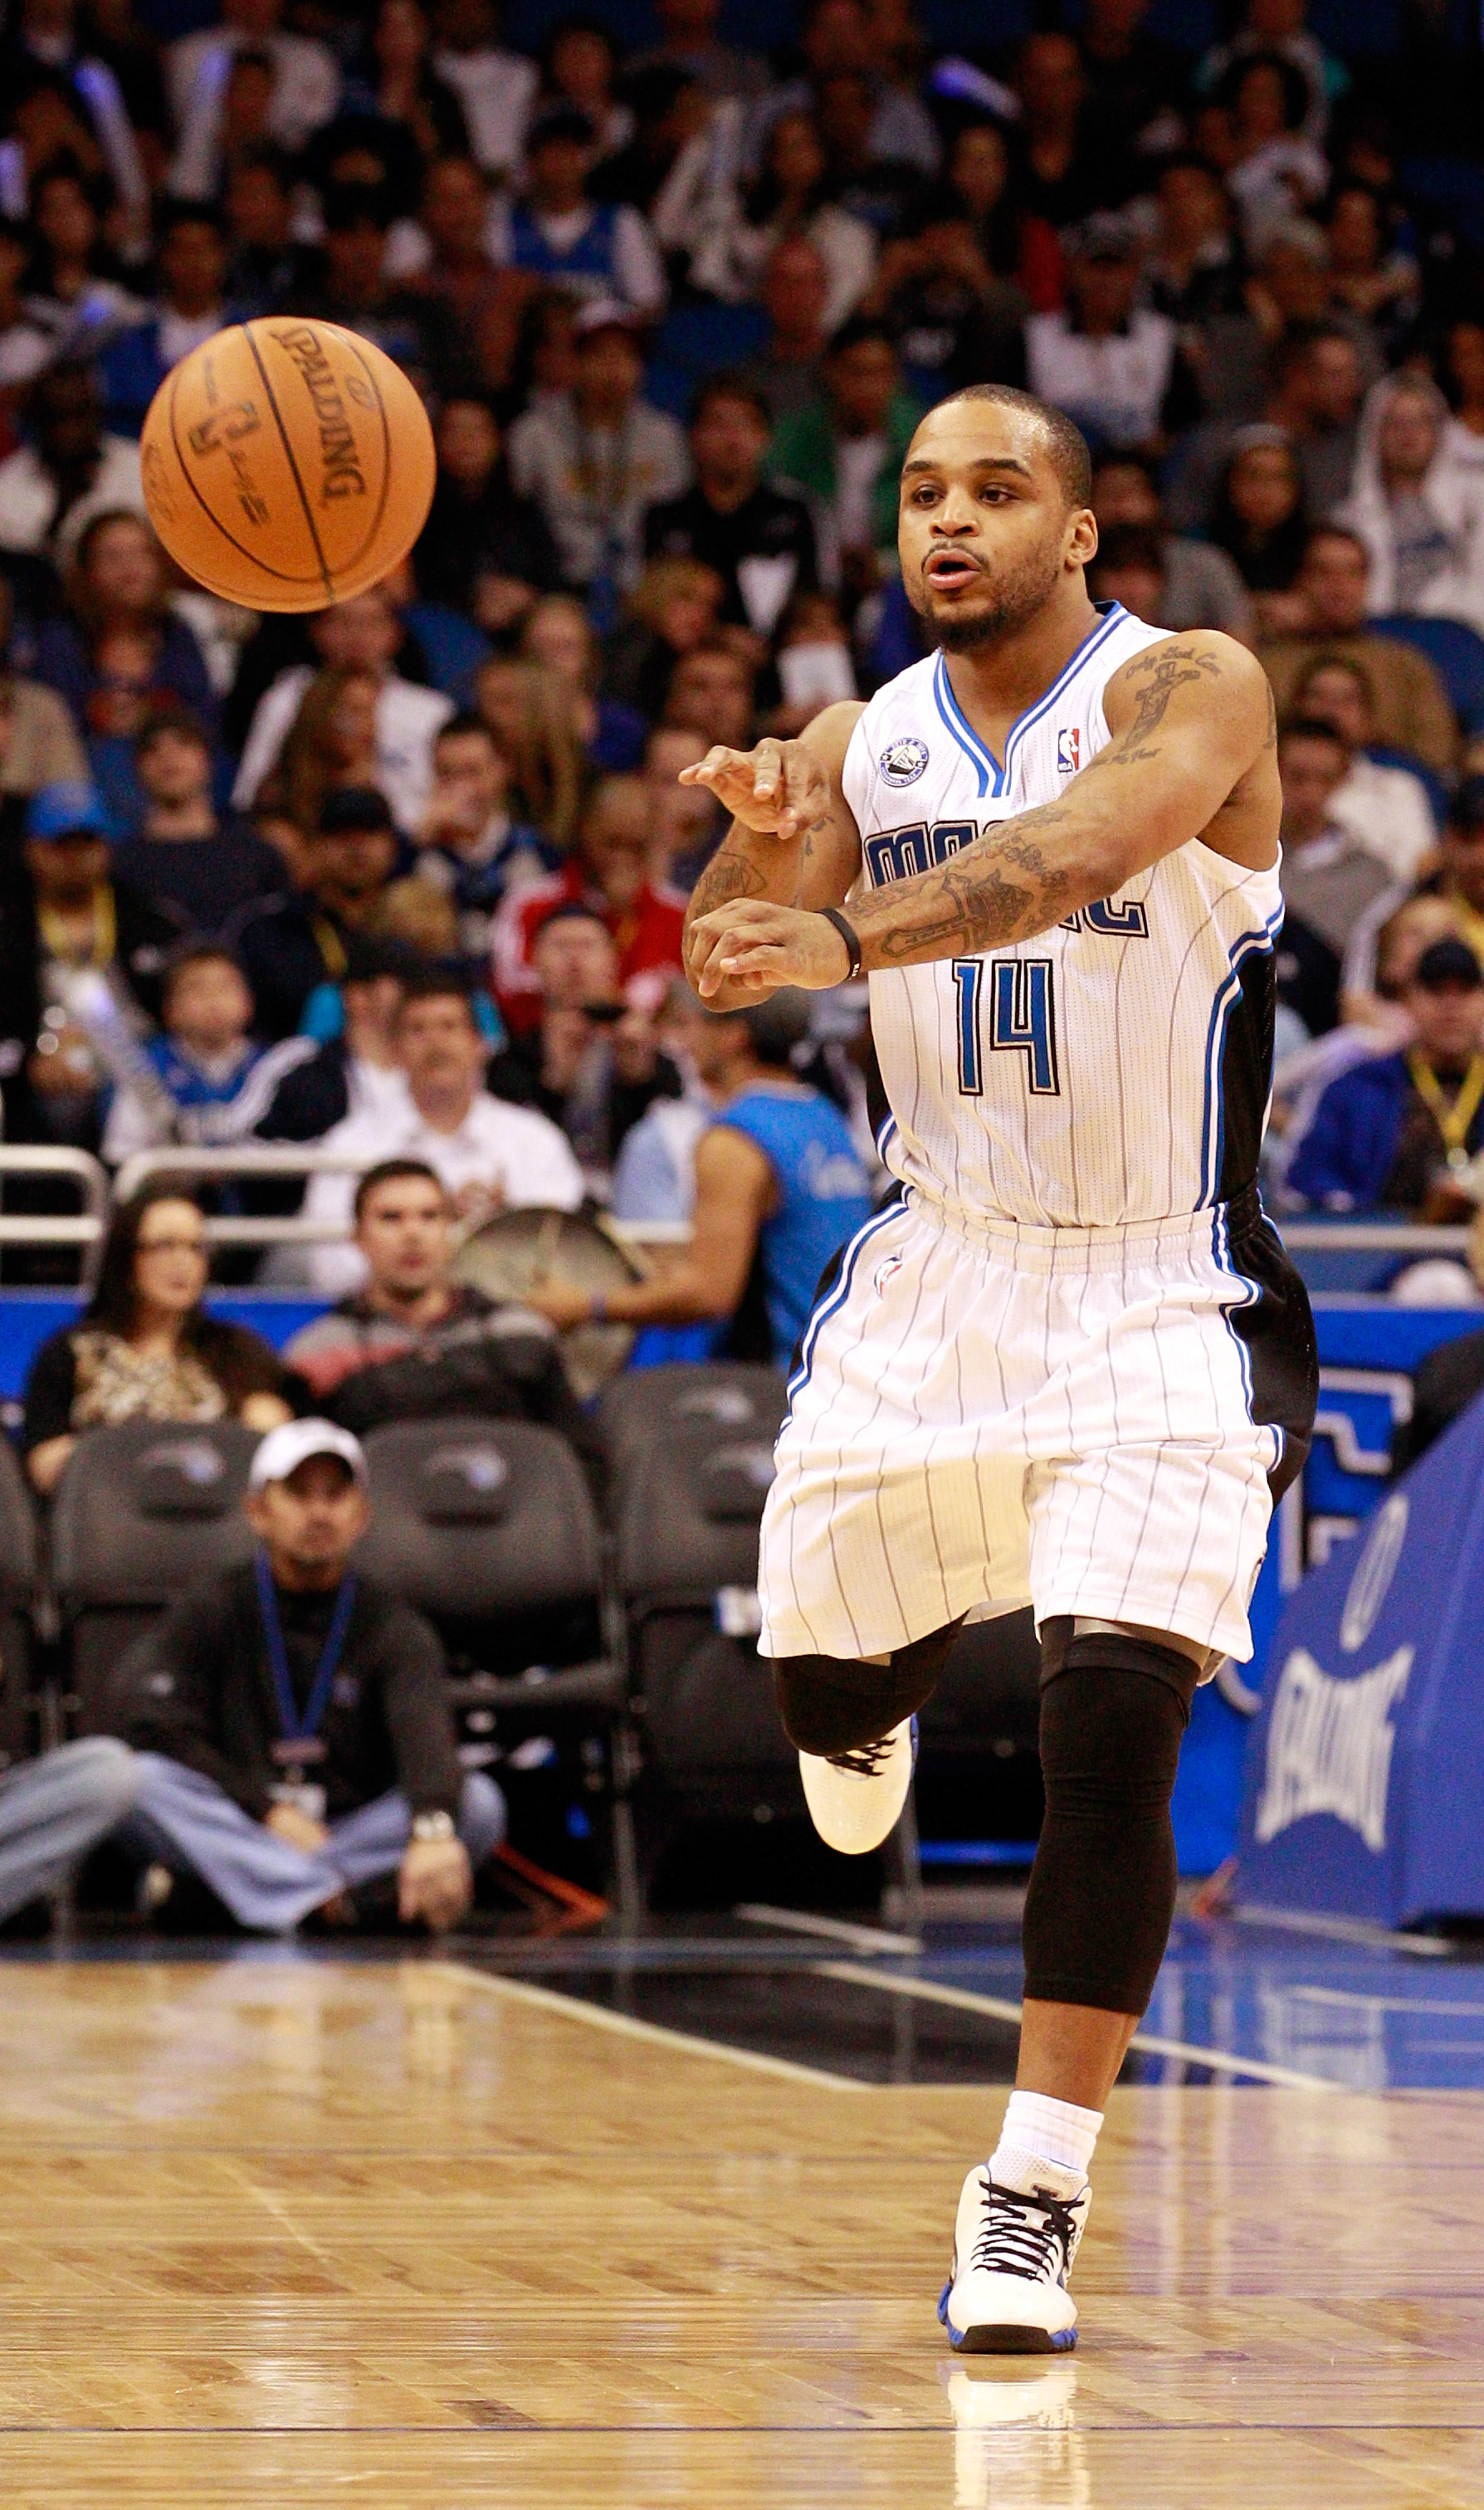 ORLANDO, FL - JANUARY 24:  Jameer Nelson #14 of the Orlando Magic passes the ball during the game against the Detroit Pistons at Amway Arena on January 24, 2011 in Orlando, Florida.  NOTE TO USER: User expressly acknowledges and agrees that, by downloadin